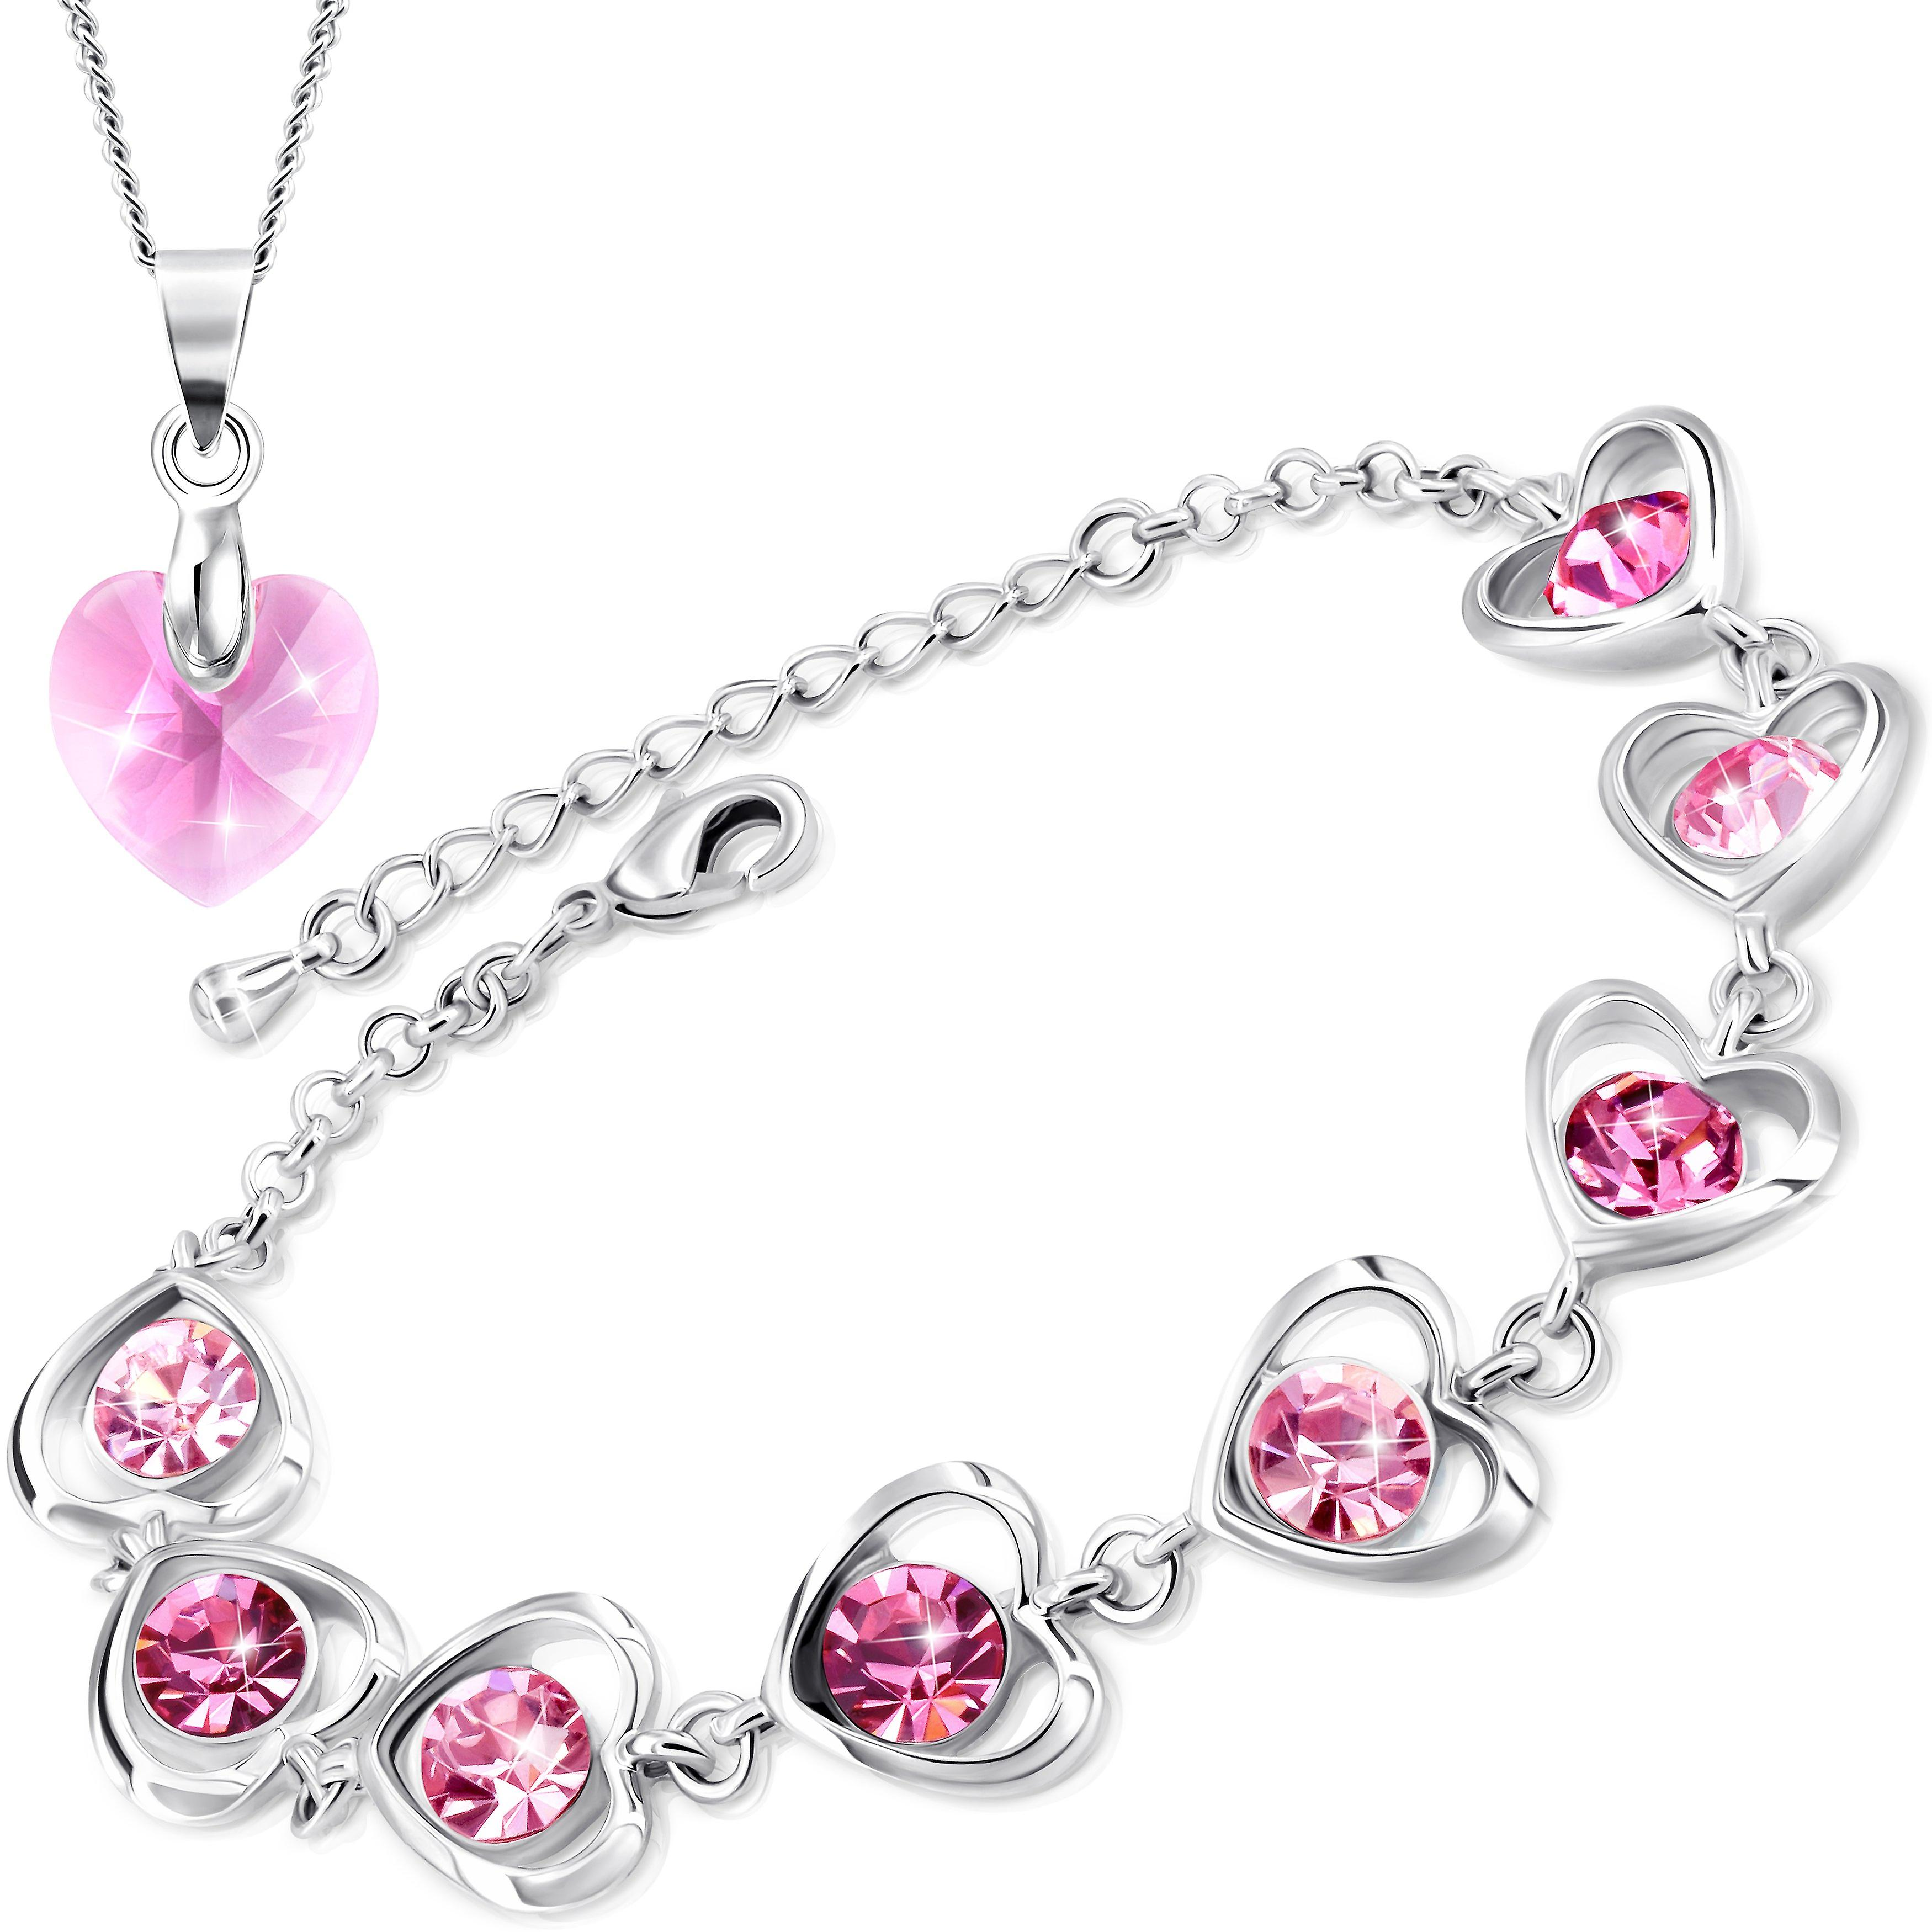 Necklace and bracelet with swarovski crystal. rhodium plated. by 2splendid. 2 for 1. gift box included. bnqz022-24